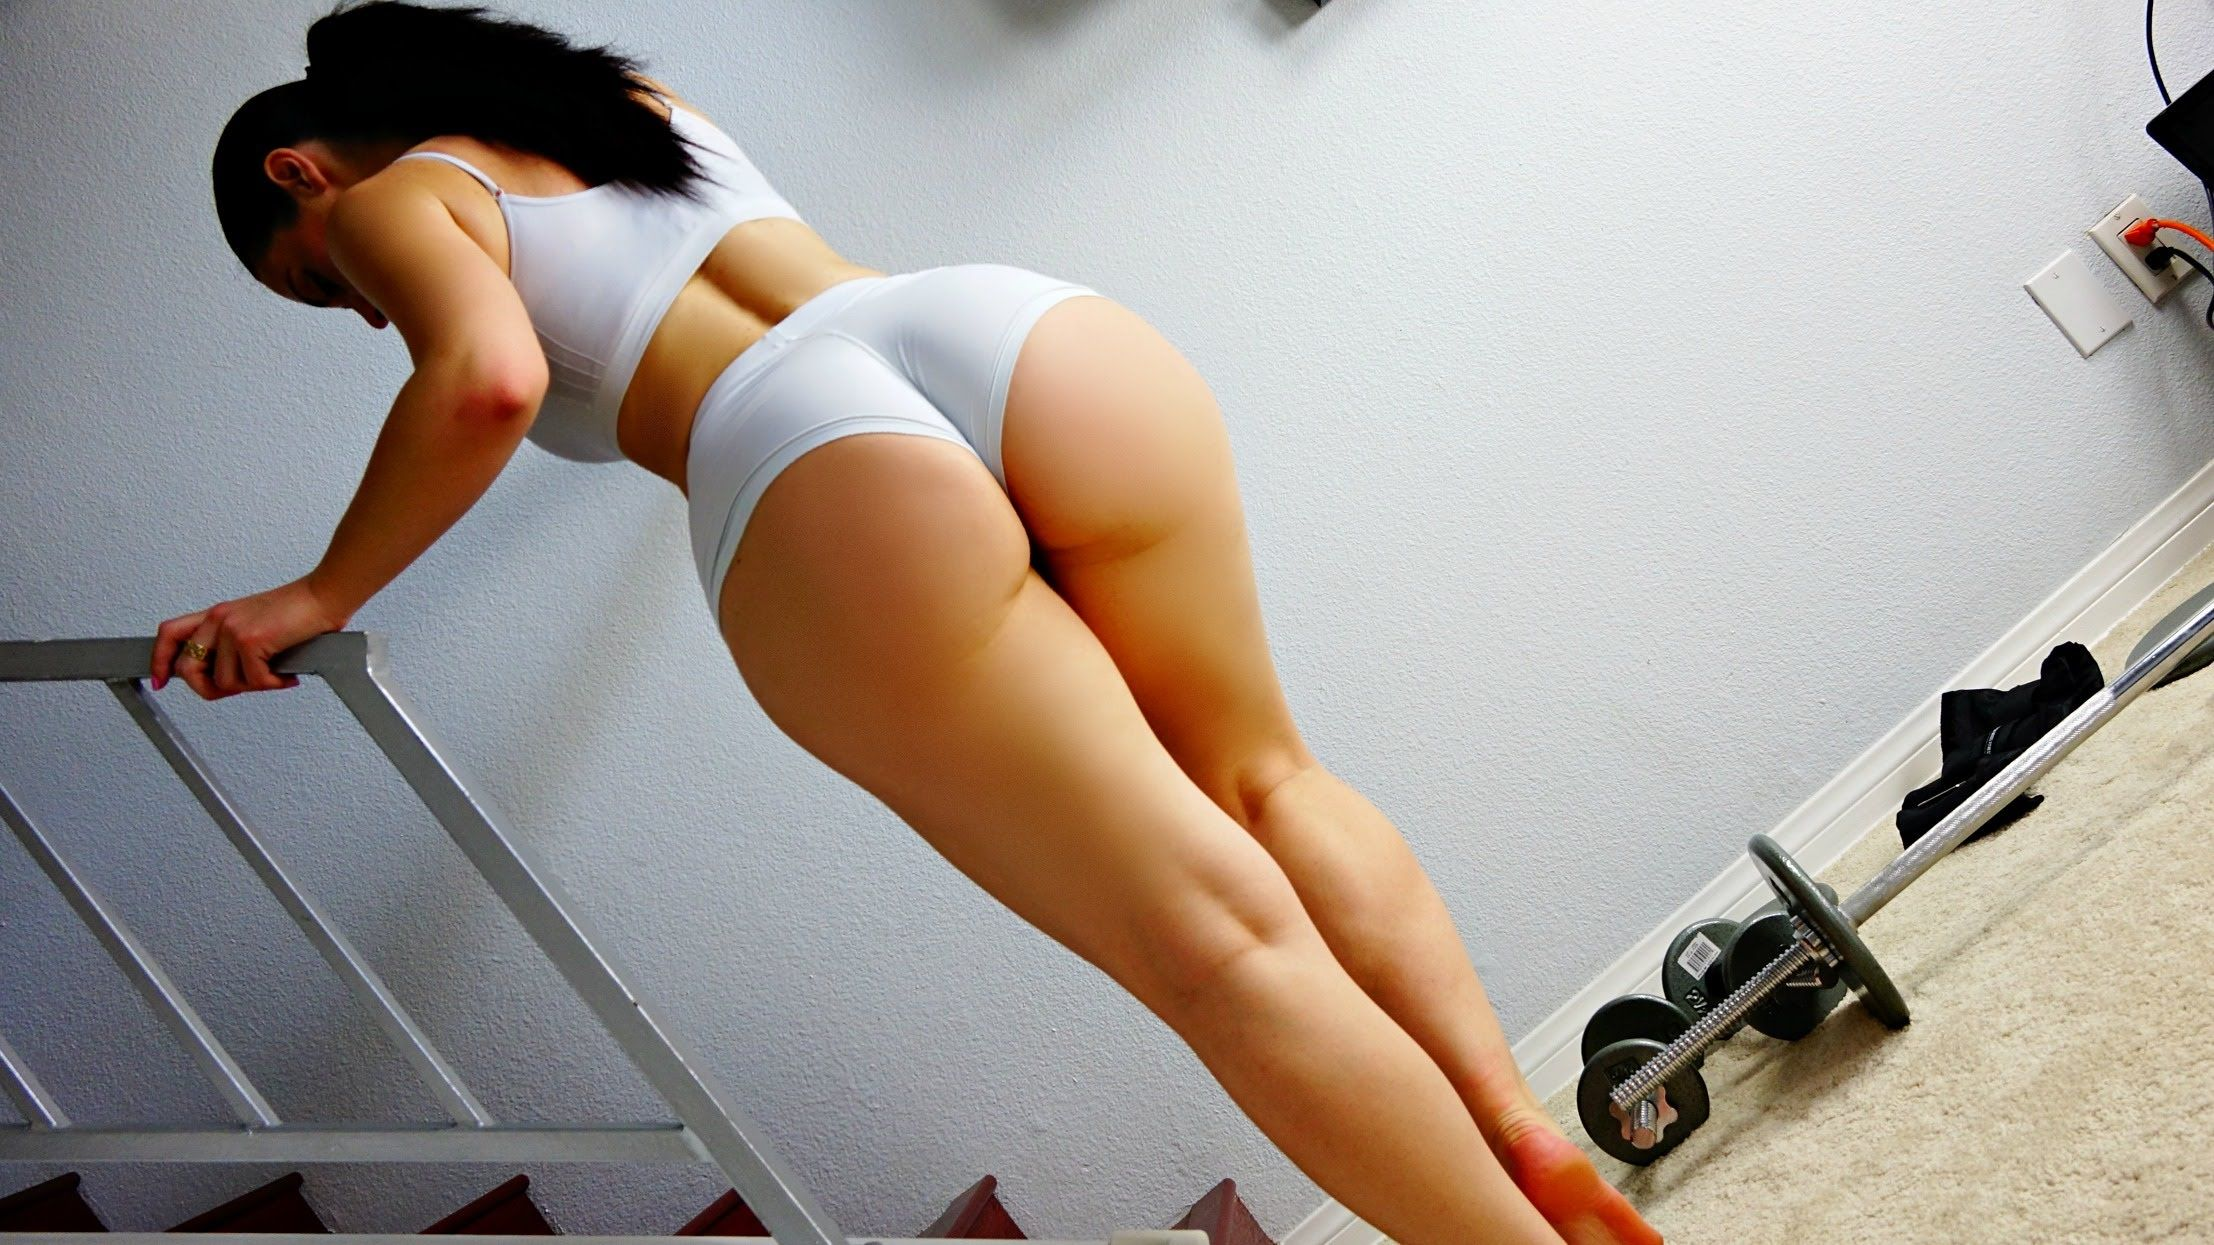 image Build a booty workout so nerved up please forgive